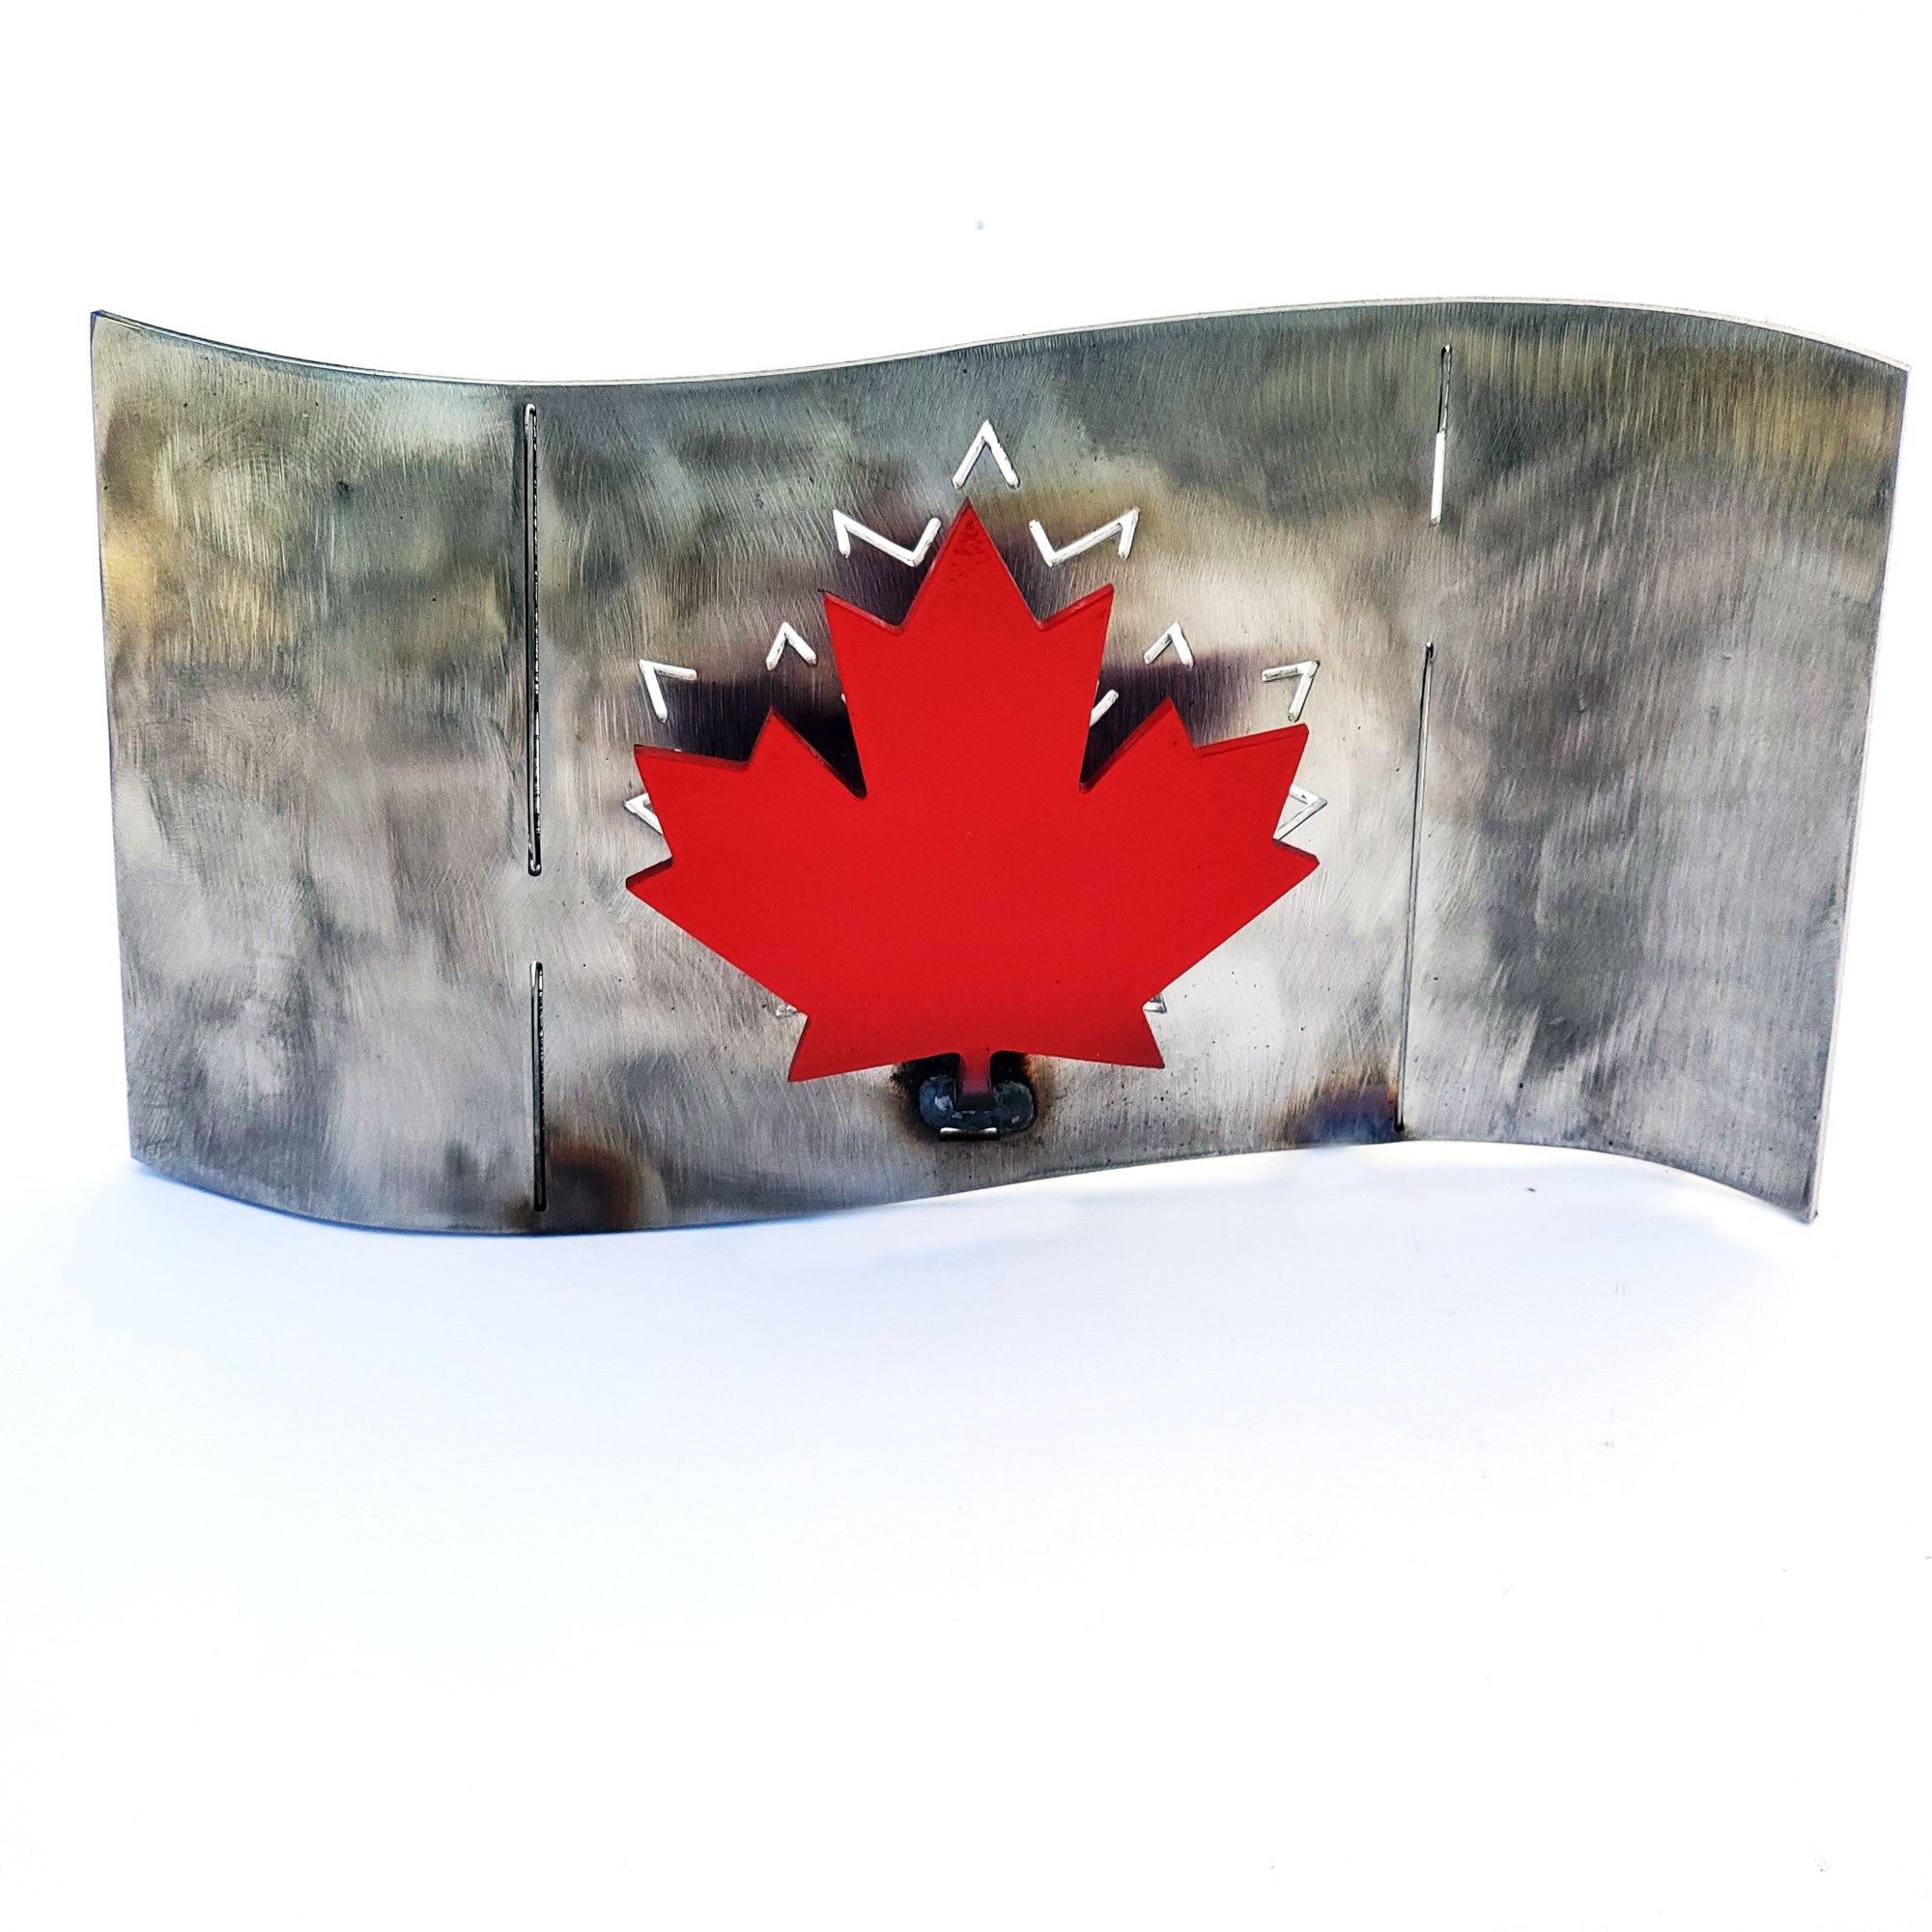 Metal Art Canadian Flag Table Mount Home Decor